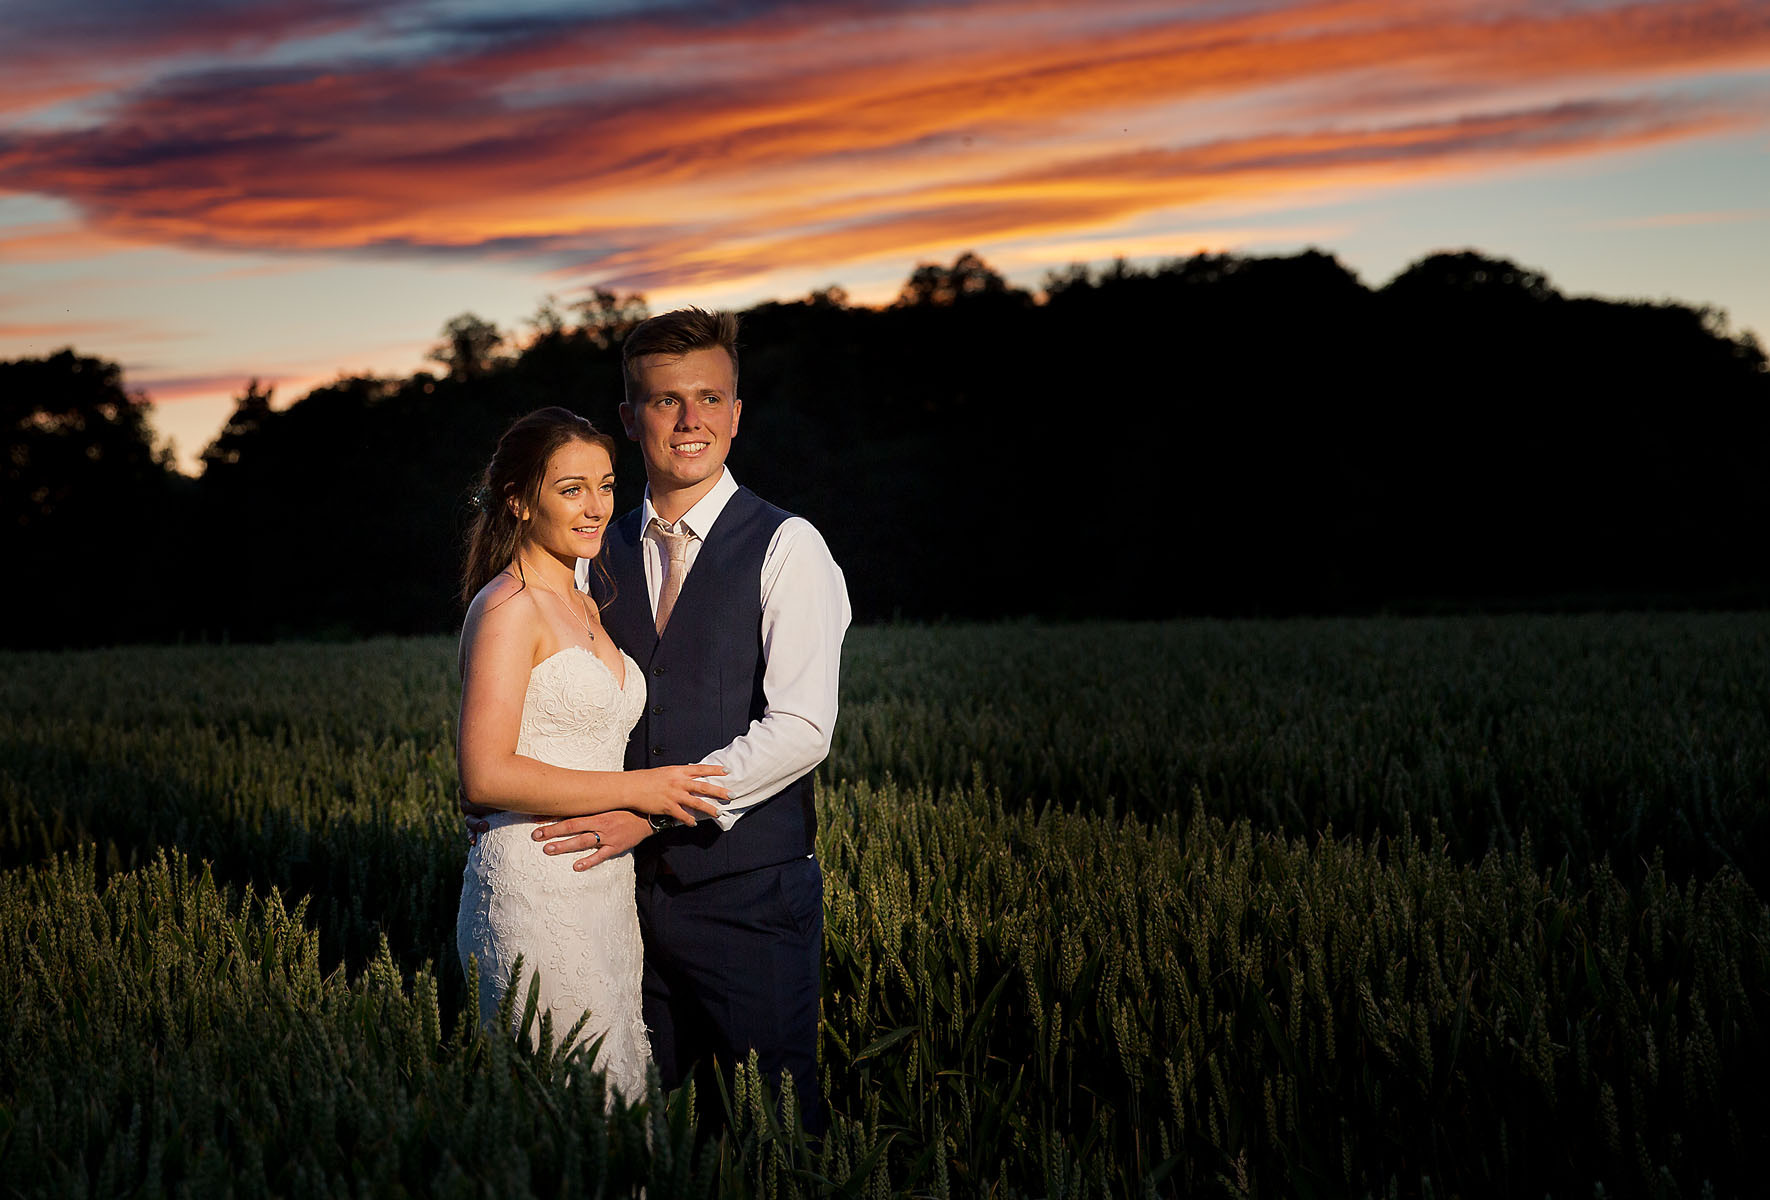 Hull Wedding Photographer - Paul Hawkett Photography at South Dalton near Beverley